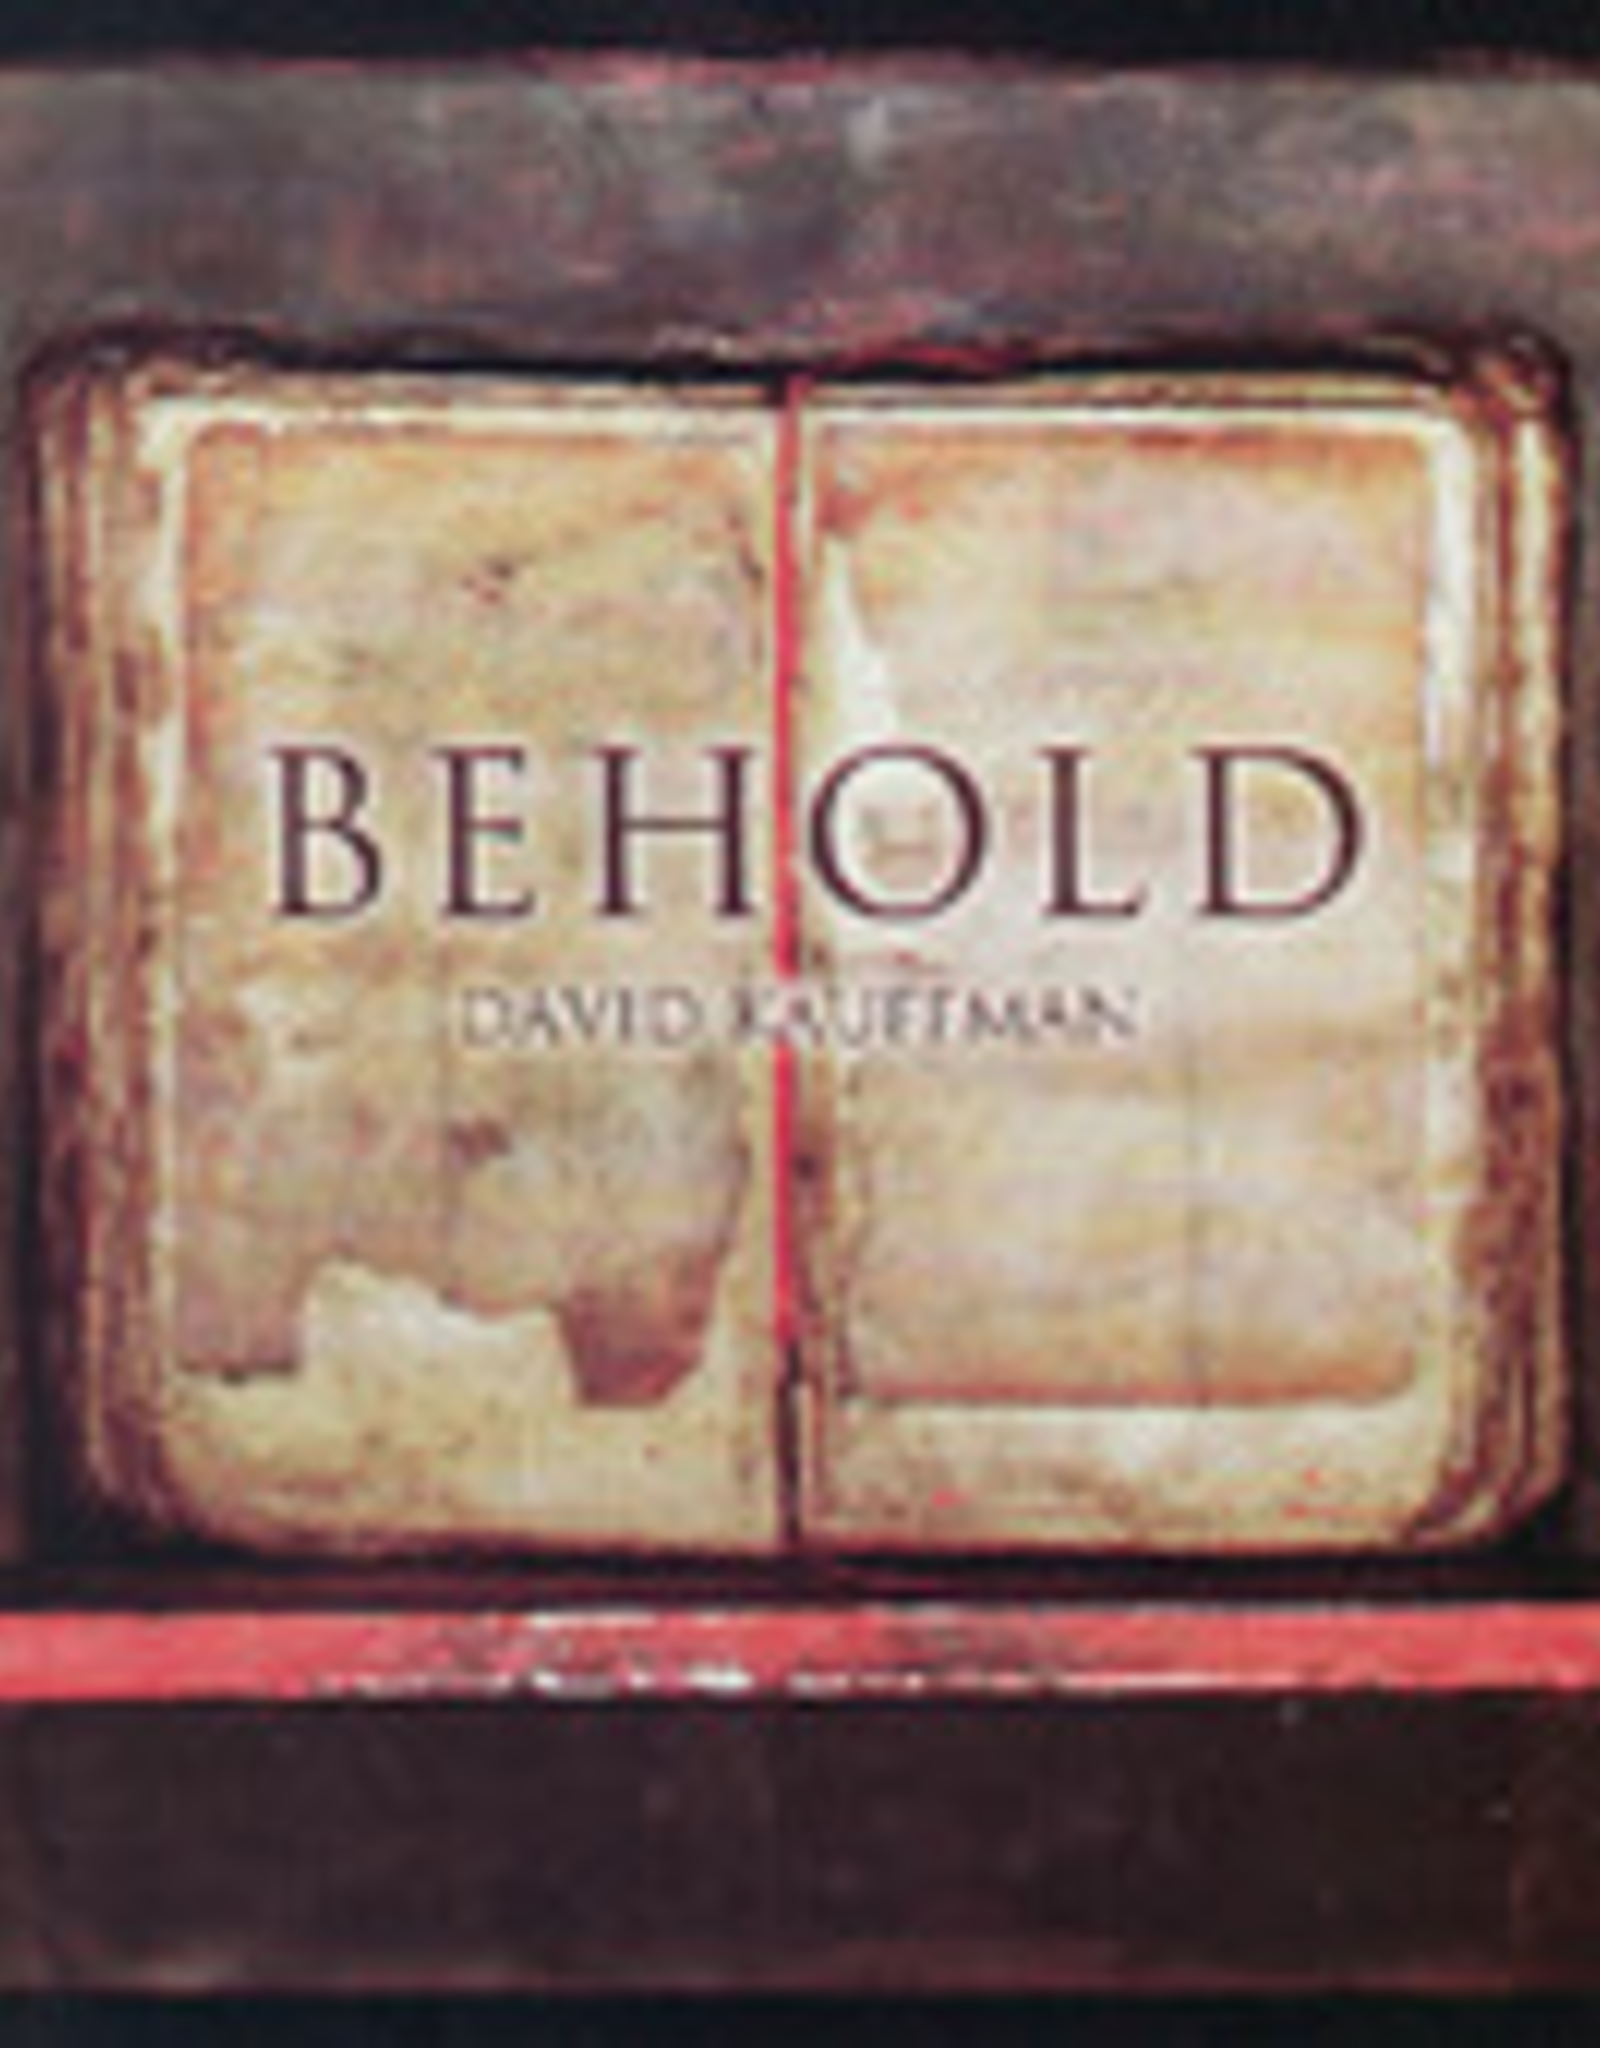 Good For The Soul Music Behold, David Kauffman (CD)